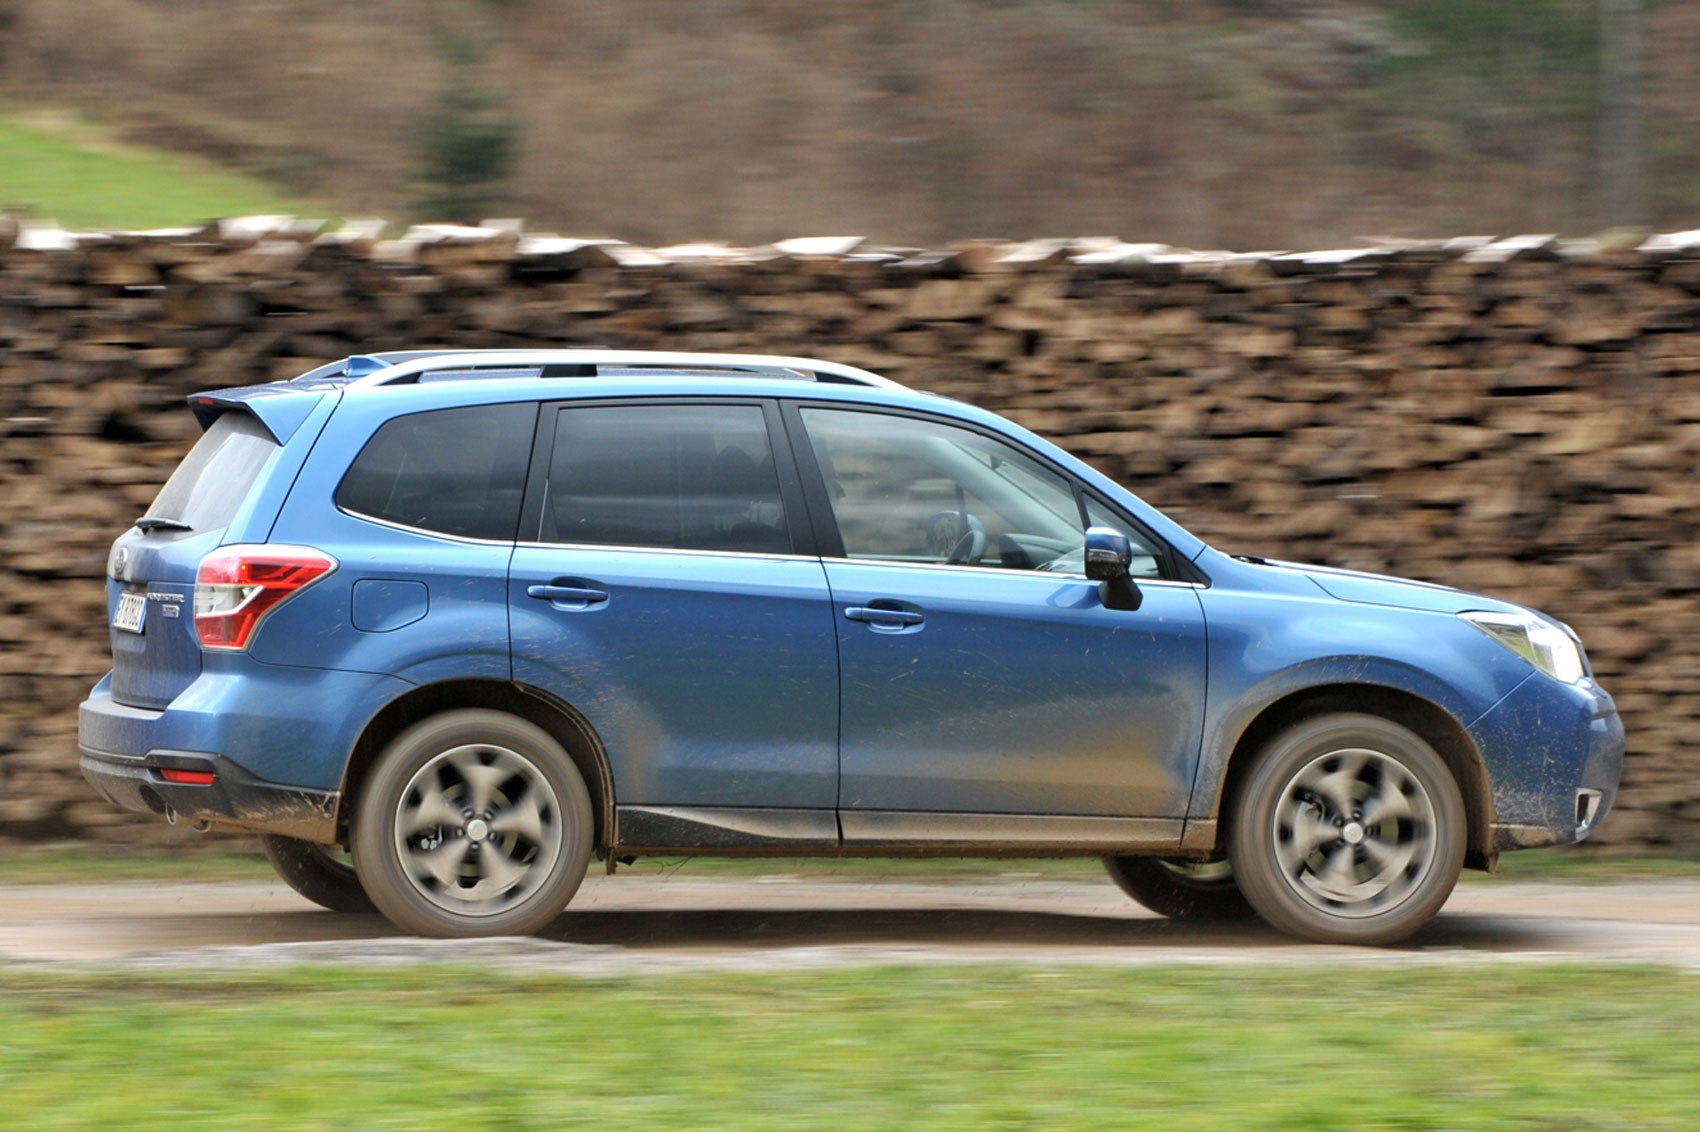 Subaru Forester 2 0D Lineartronic XC Premium 2015 review by CAR